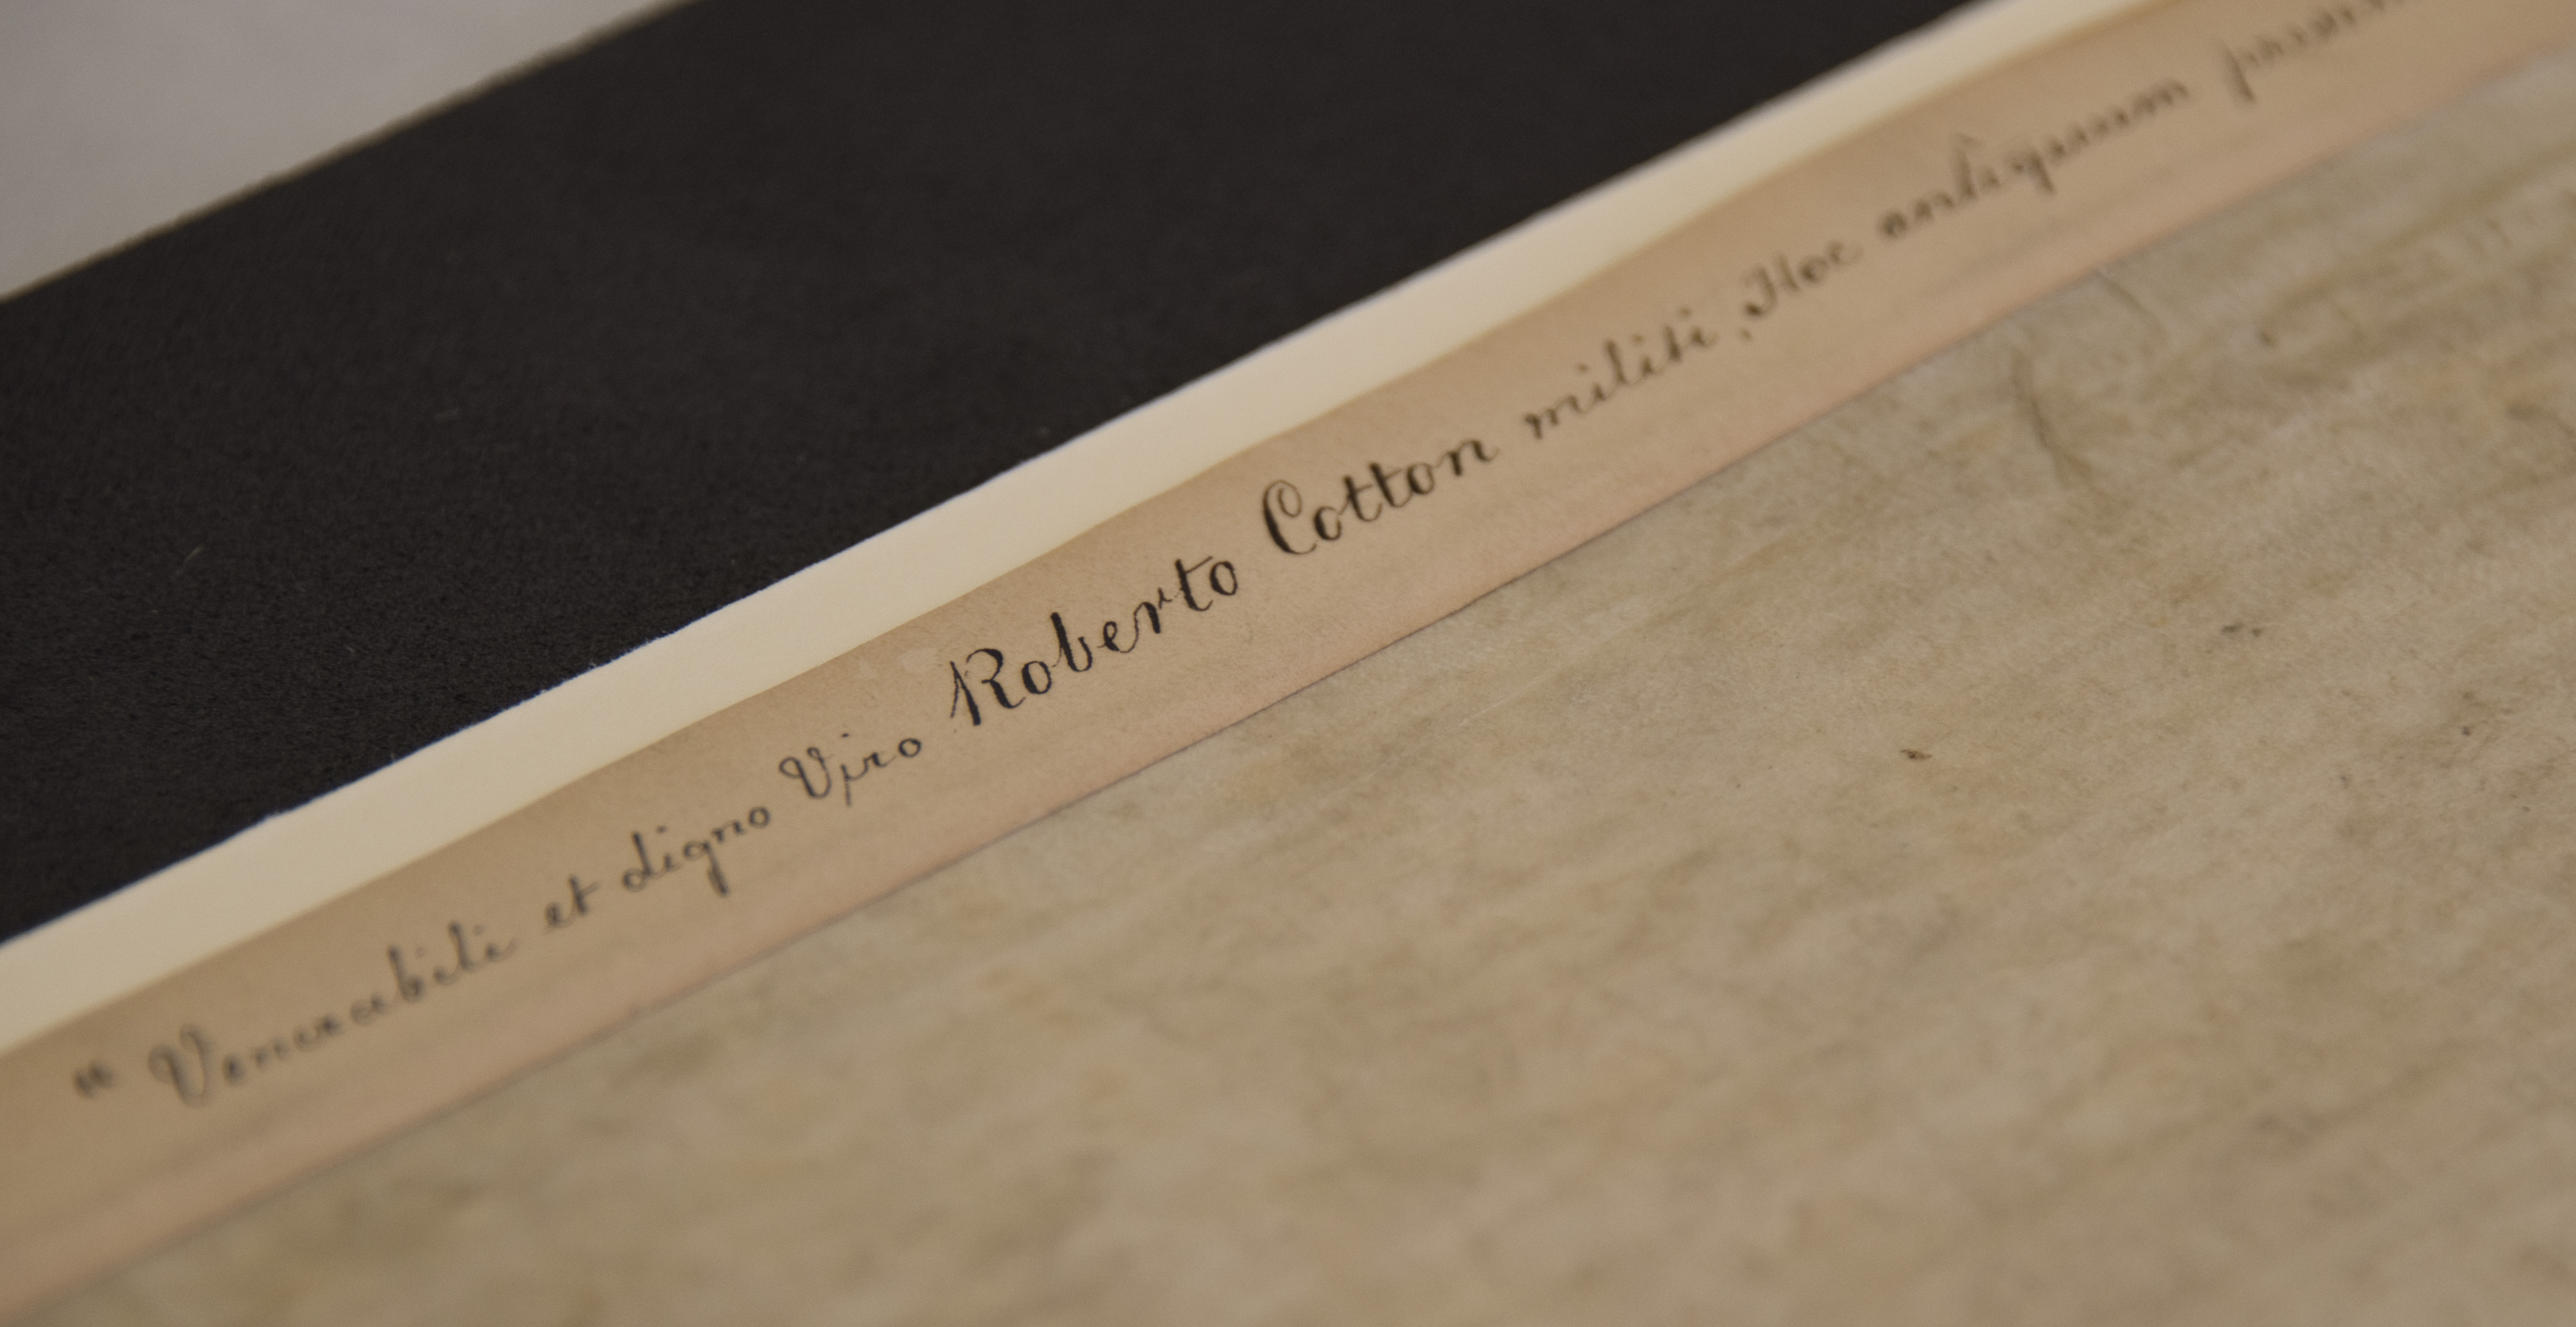 One of the British Library's Magna Carta manuscripts, which came into the national collection in 1753 as part of the vast private library of the MP and antiquary Sir Robert Cotton.